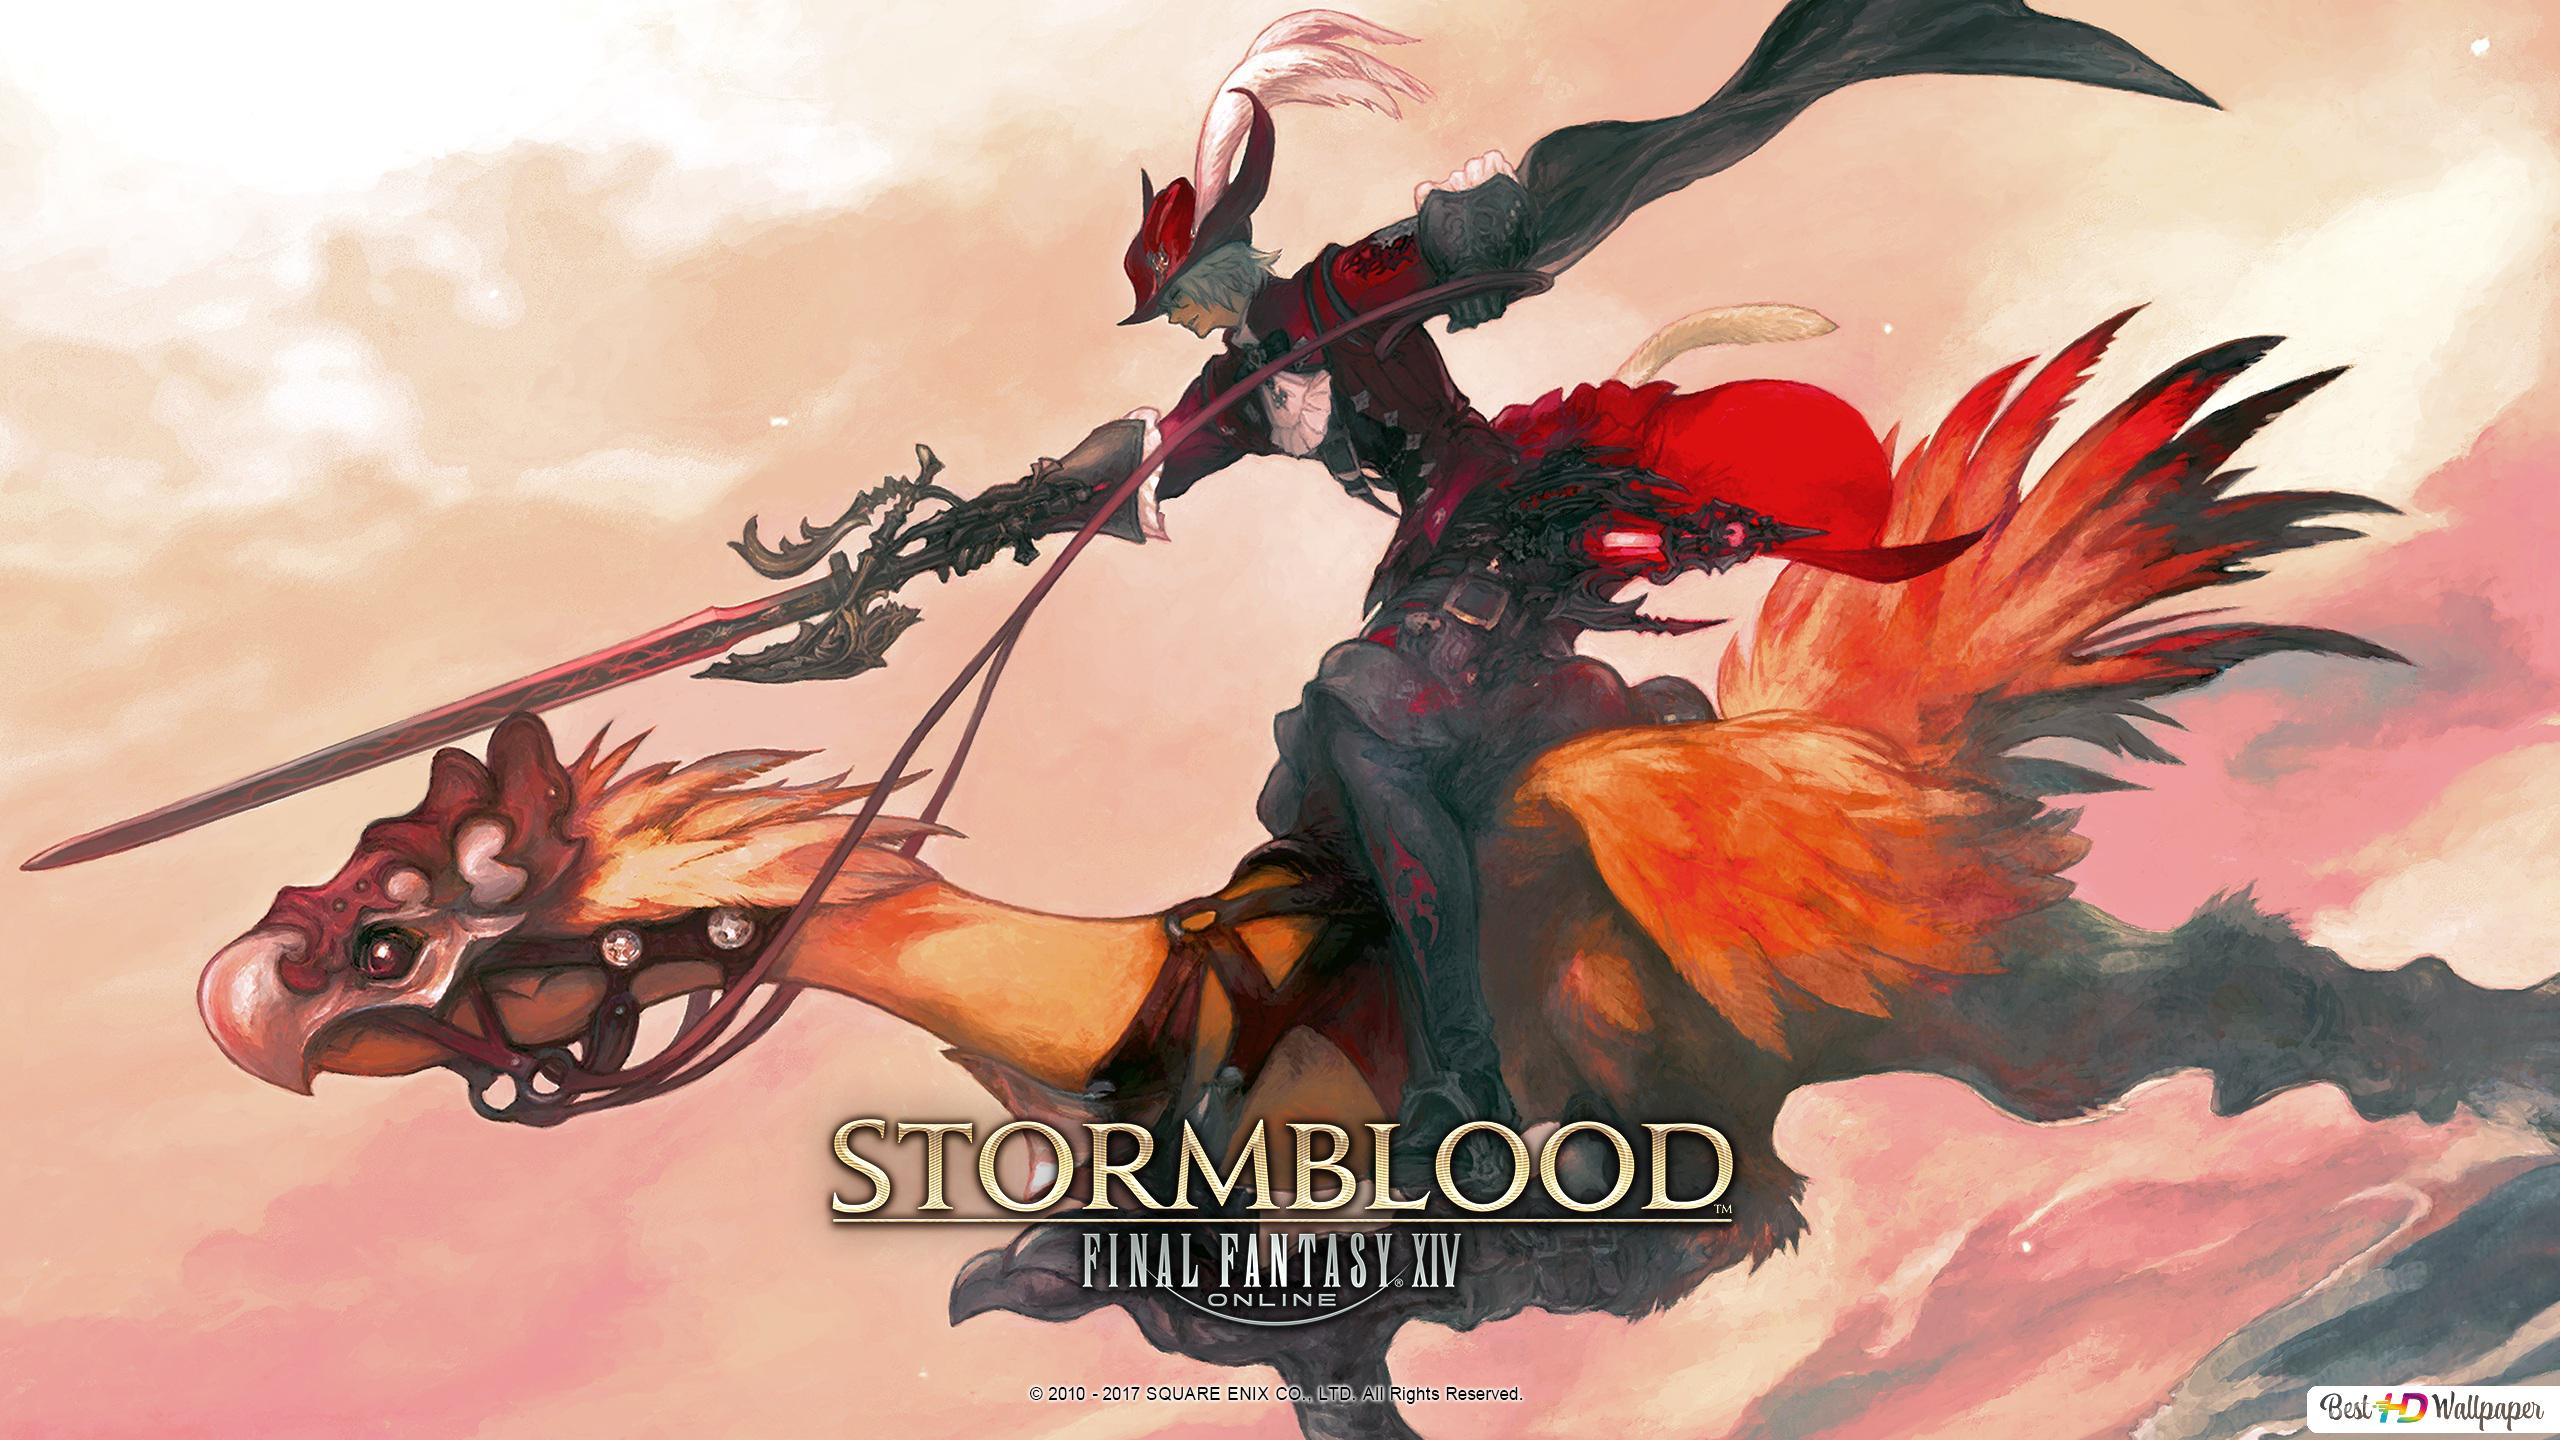 Final Fantasy Xiv Stormblood Red Mage Chocobo Hd Wallpaper Download